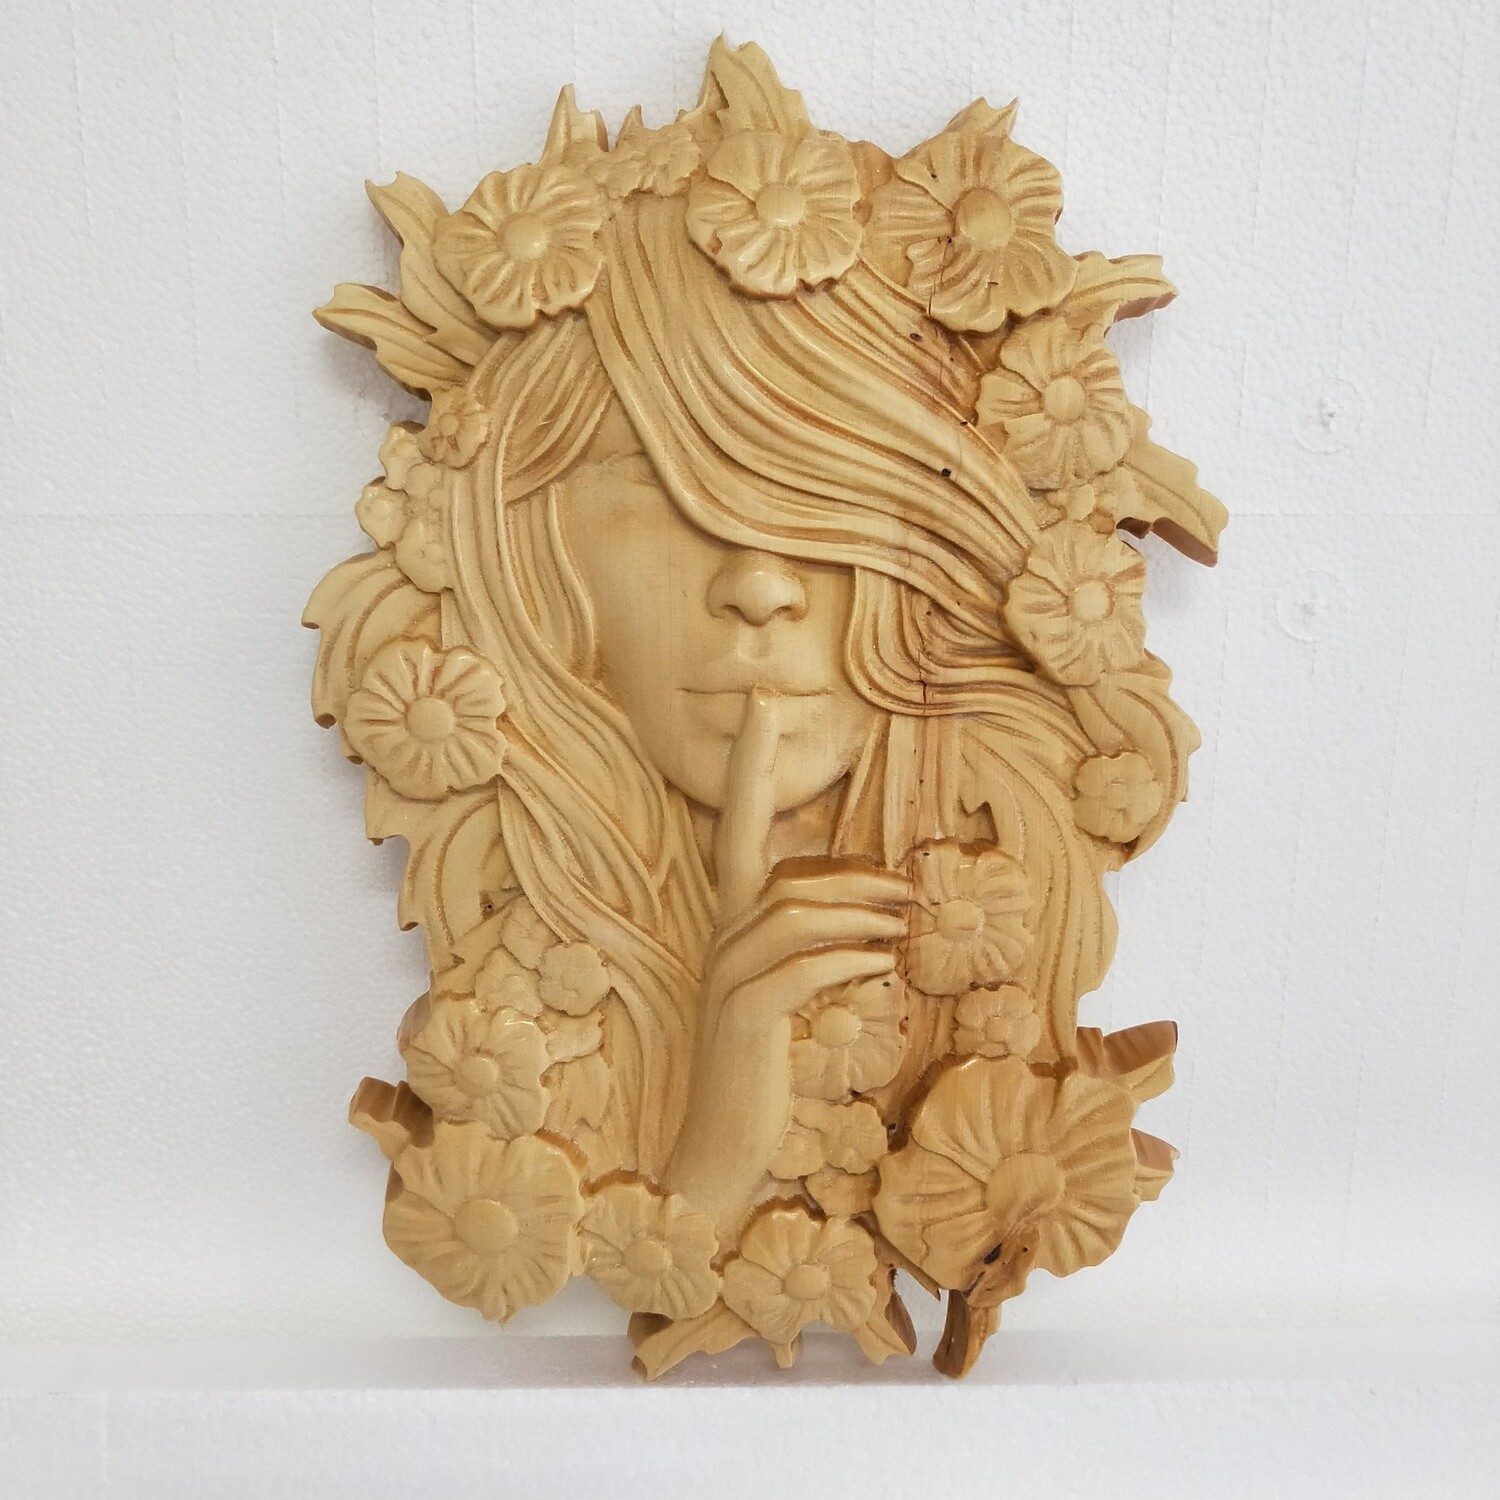 Lady with floral crown - Huon Pine